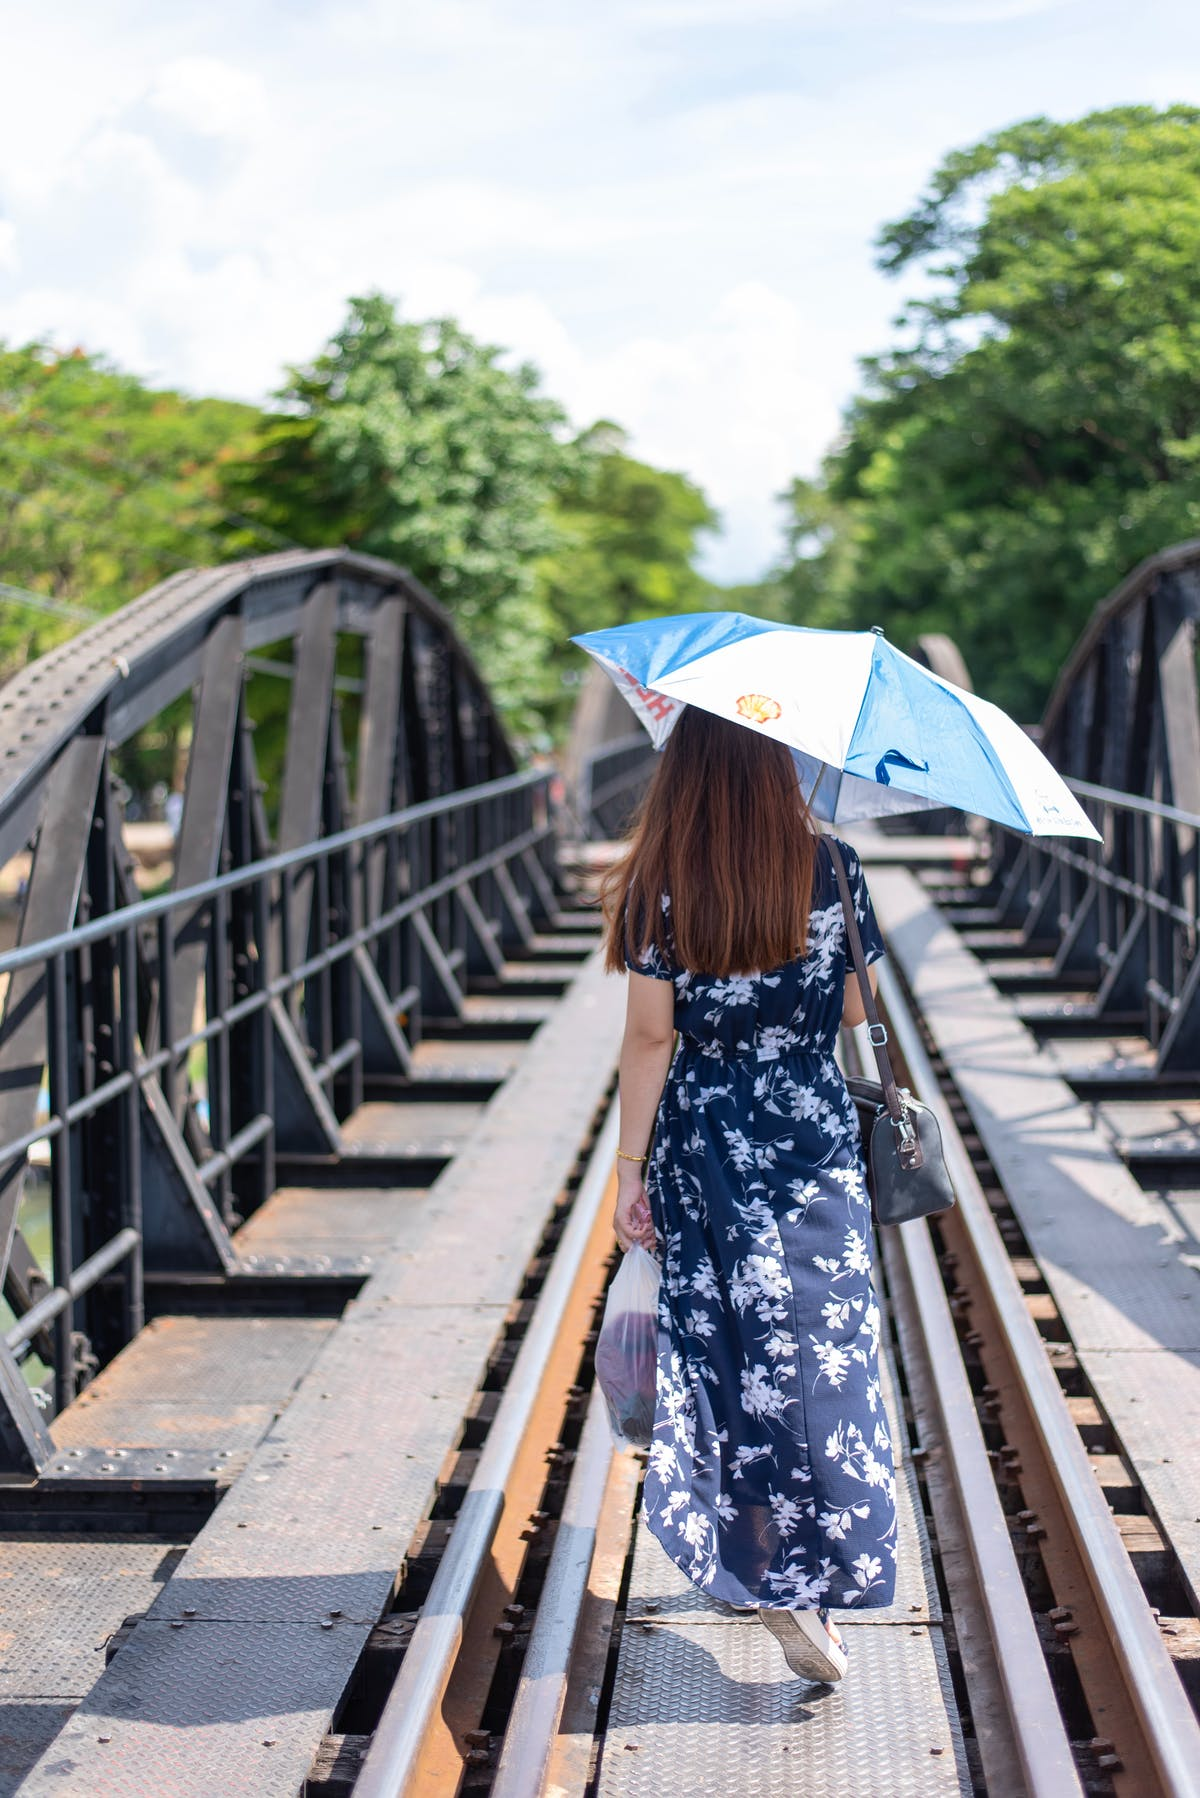 A young woman with an umbrella walks on the bridge of the river Kwai - Photo by mistermon on Unsplash